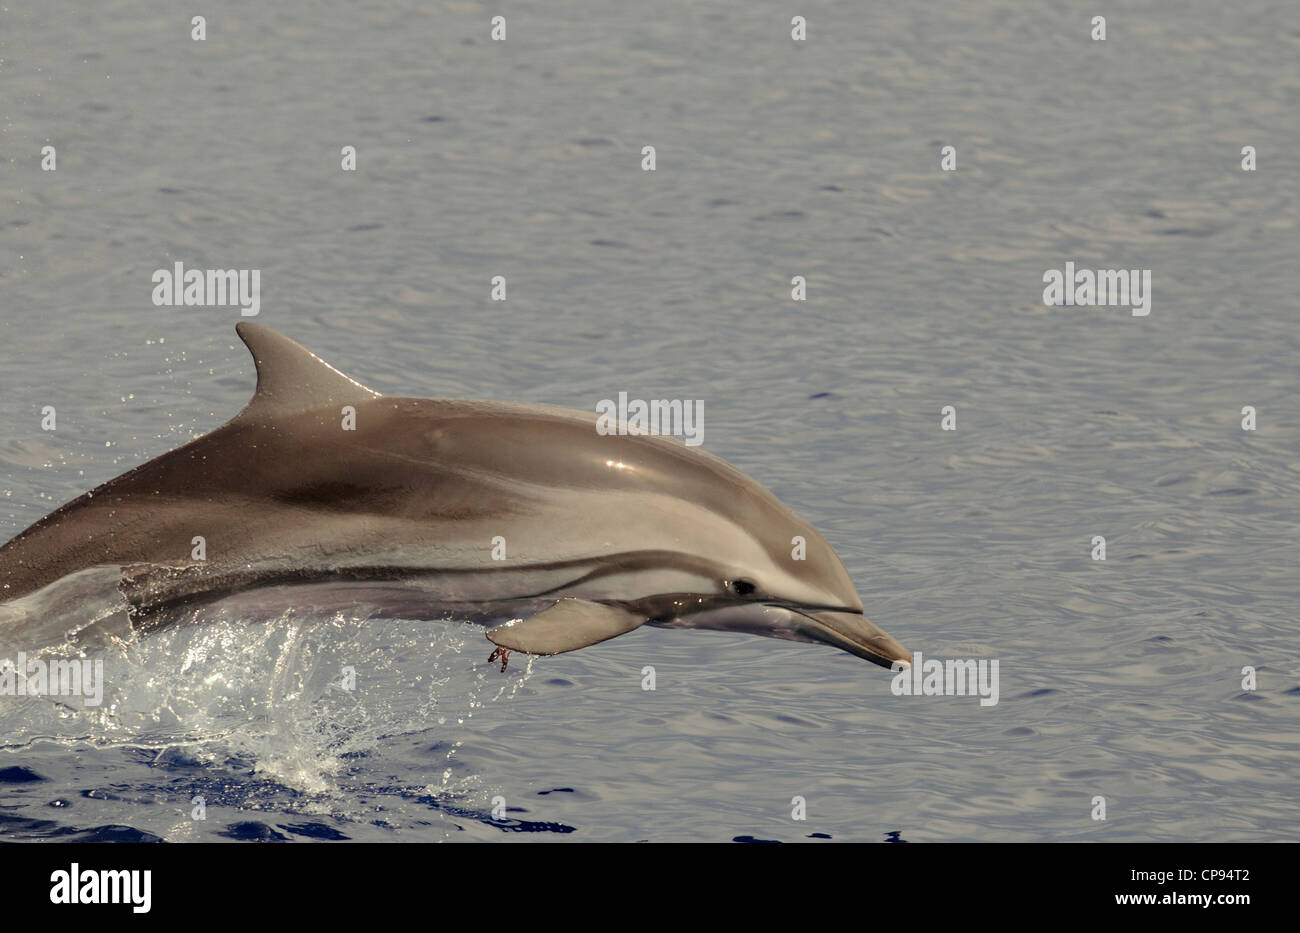 Striped Dolphin (Stenella coeruleoalba) leaping from the water, The Maldives - Stock Image